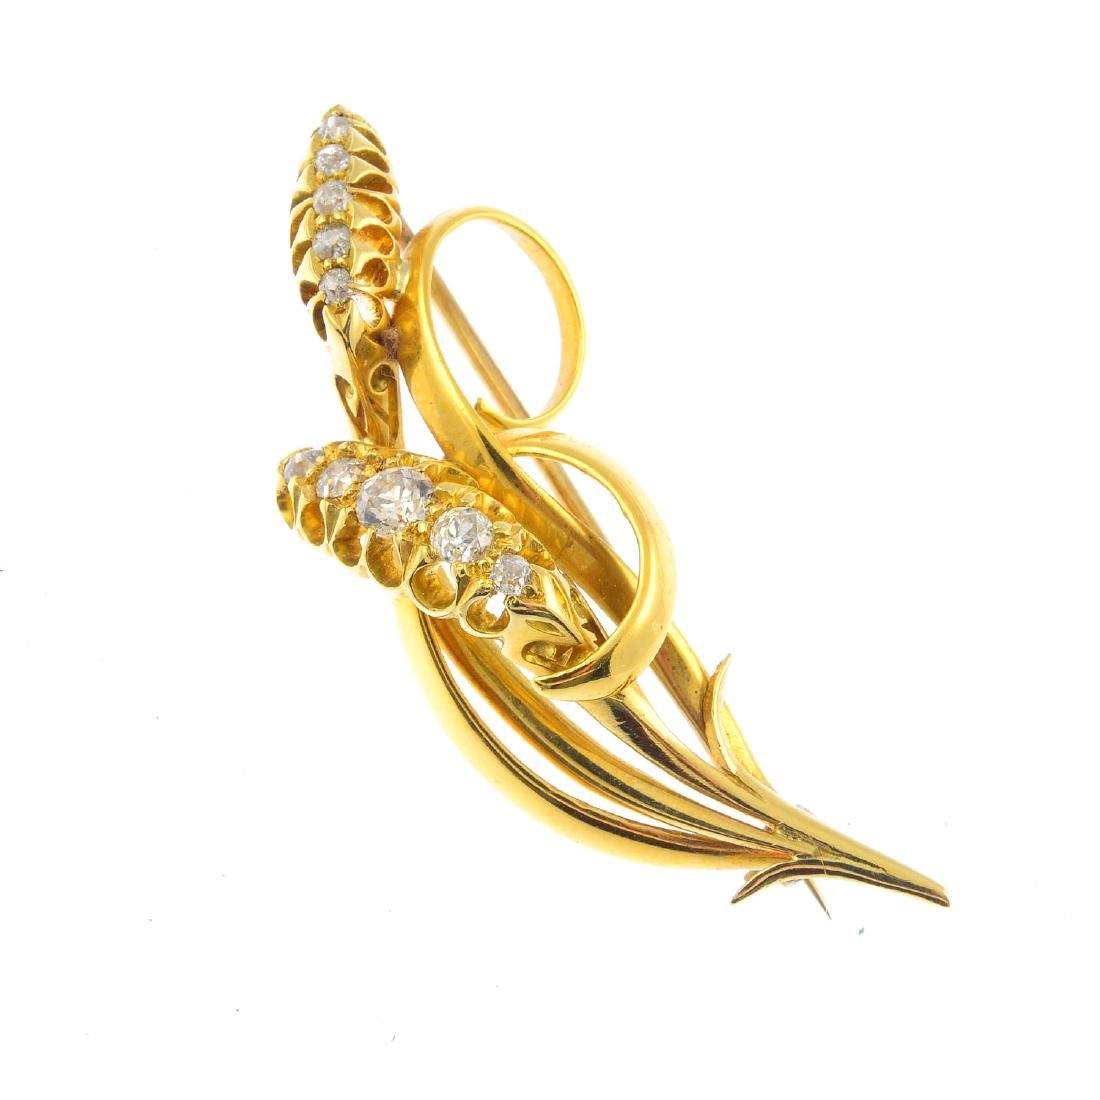 A diamond brooch. Designed as wheat sheaves, with